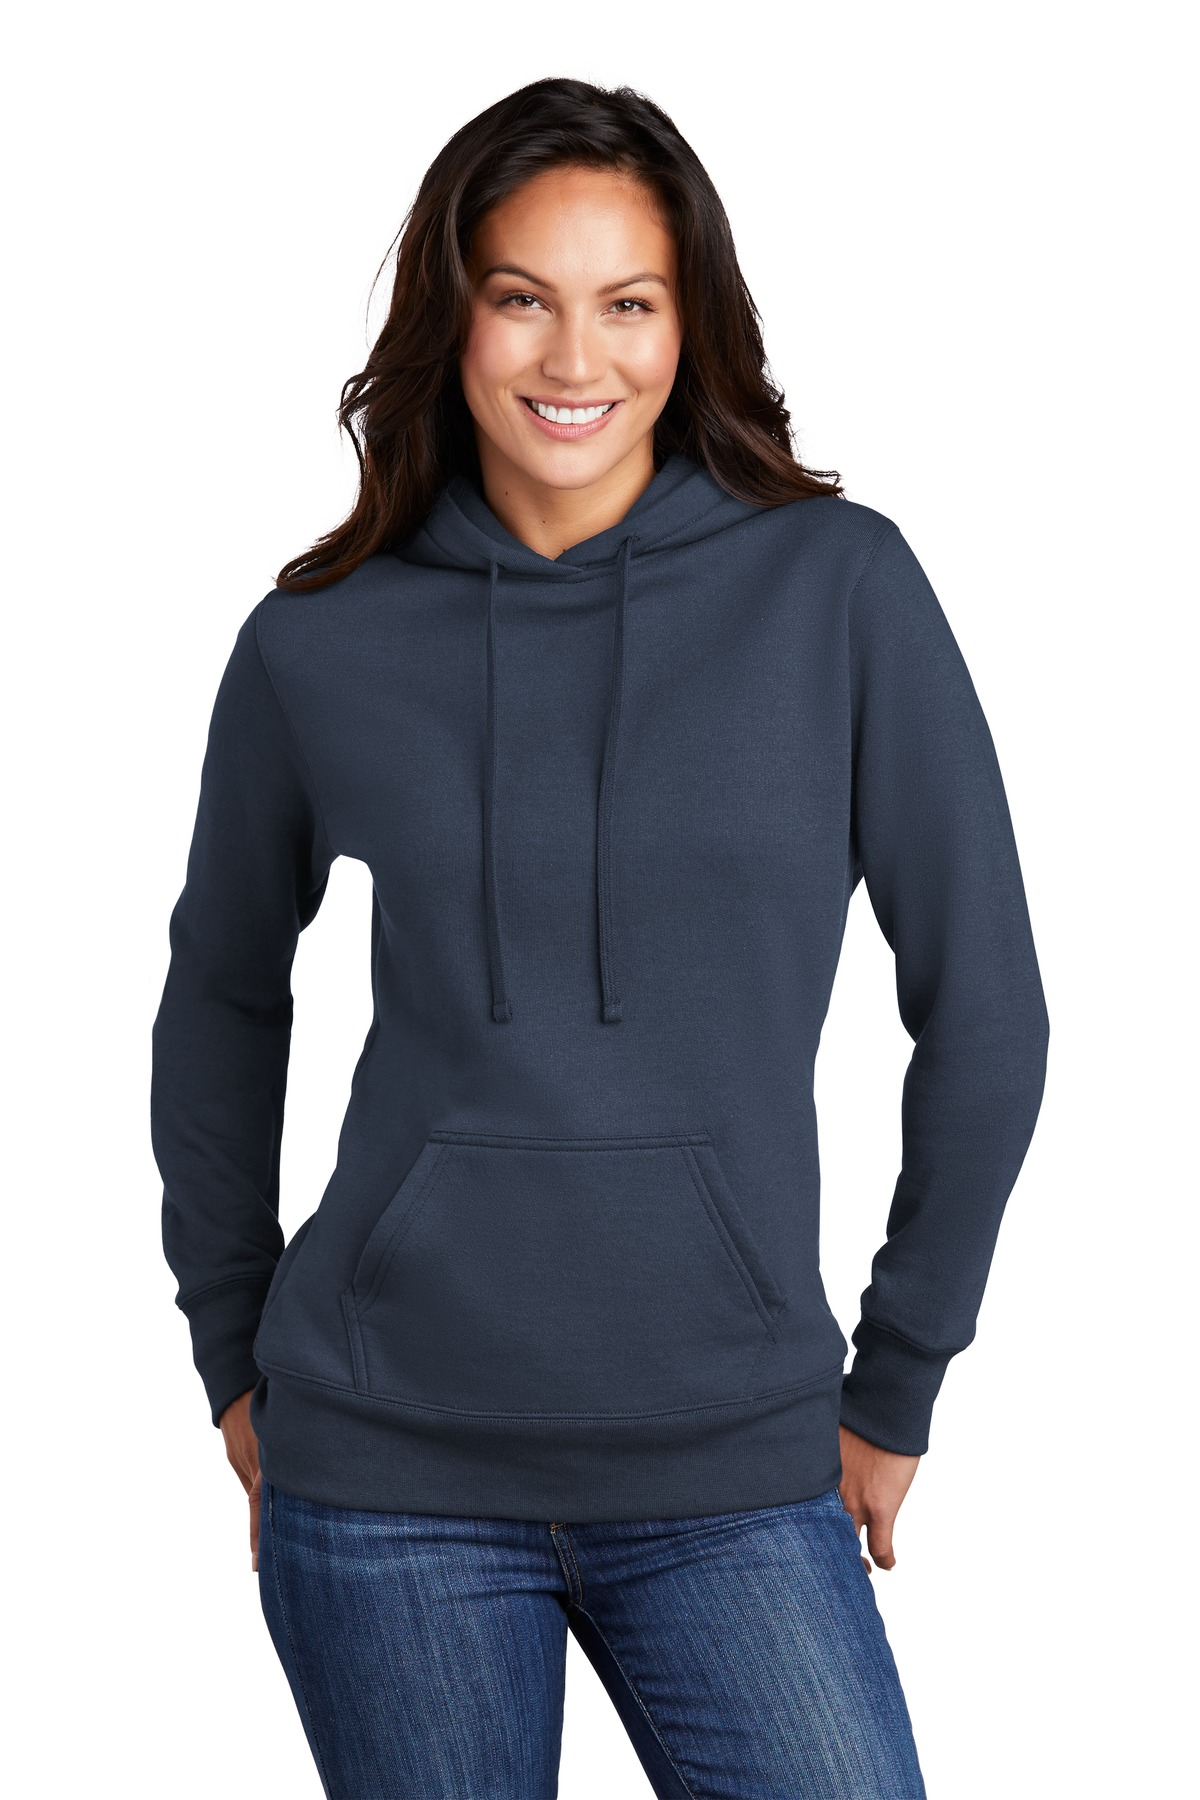 Port & Company  ®  Ladies Core Fleece Pullover Hooded Sweatshirt LPC78H - Navy